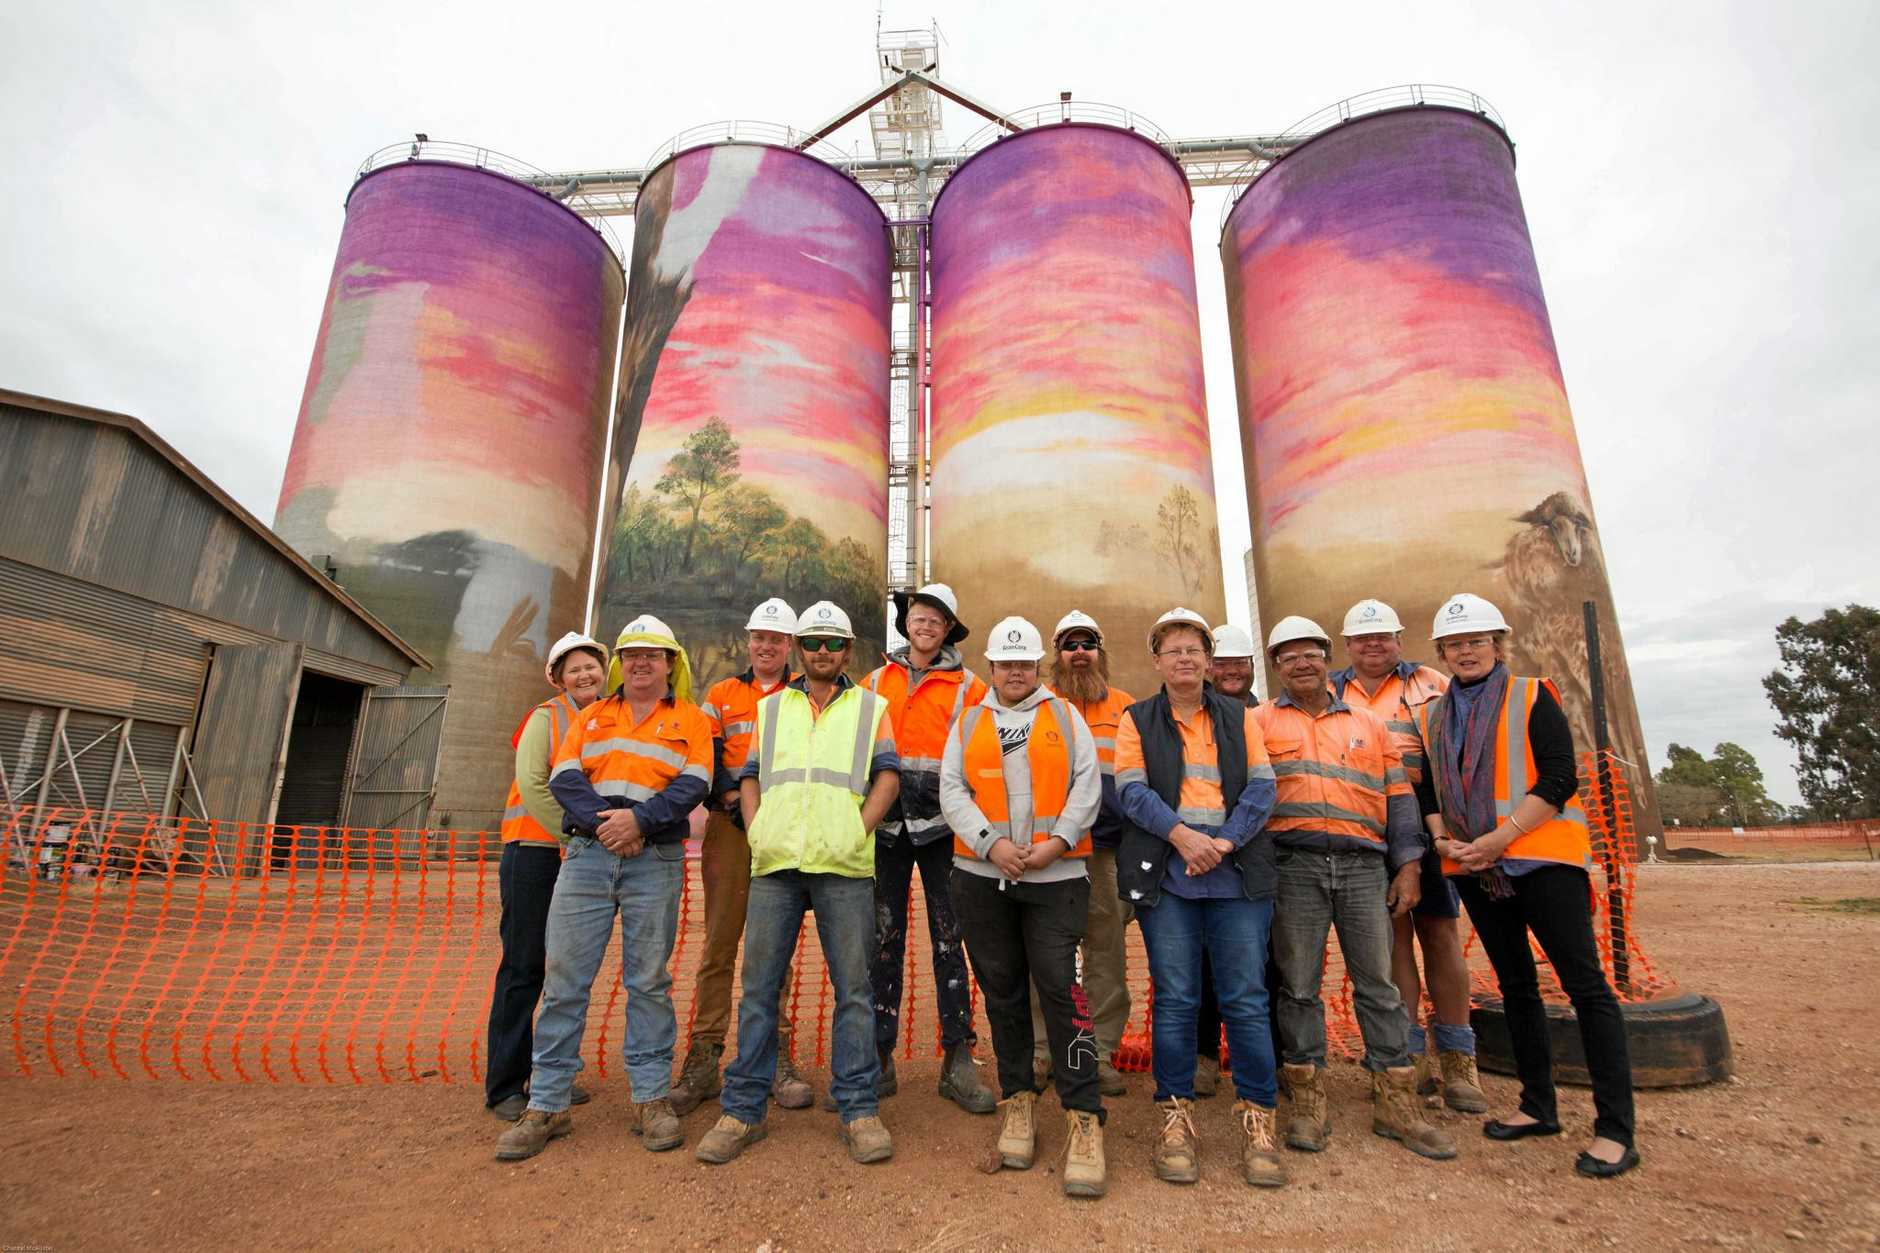 Shirley Southern (Thallon Progress Association vice-president) Darren Kelly (Grain Corp site manager), Travis Vinson (Drapl, artist) Michael Saunders, (back) Joel Fergie (The Zookeeper, artist) Casey Mitchell, Dion Mitchell (back), Cheryl Hill, Barry Morris (back) Colly Lasserre, Lenny Death, and Leanne Brosnan (Thallon Progress Association secretary).